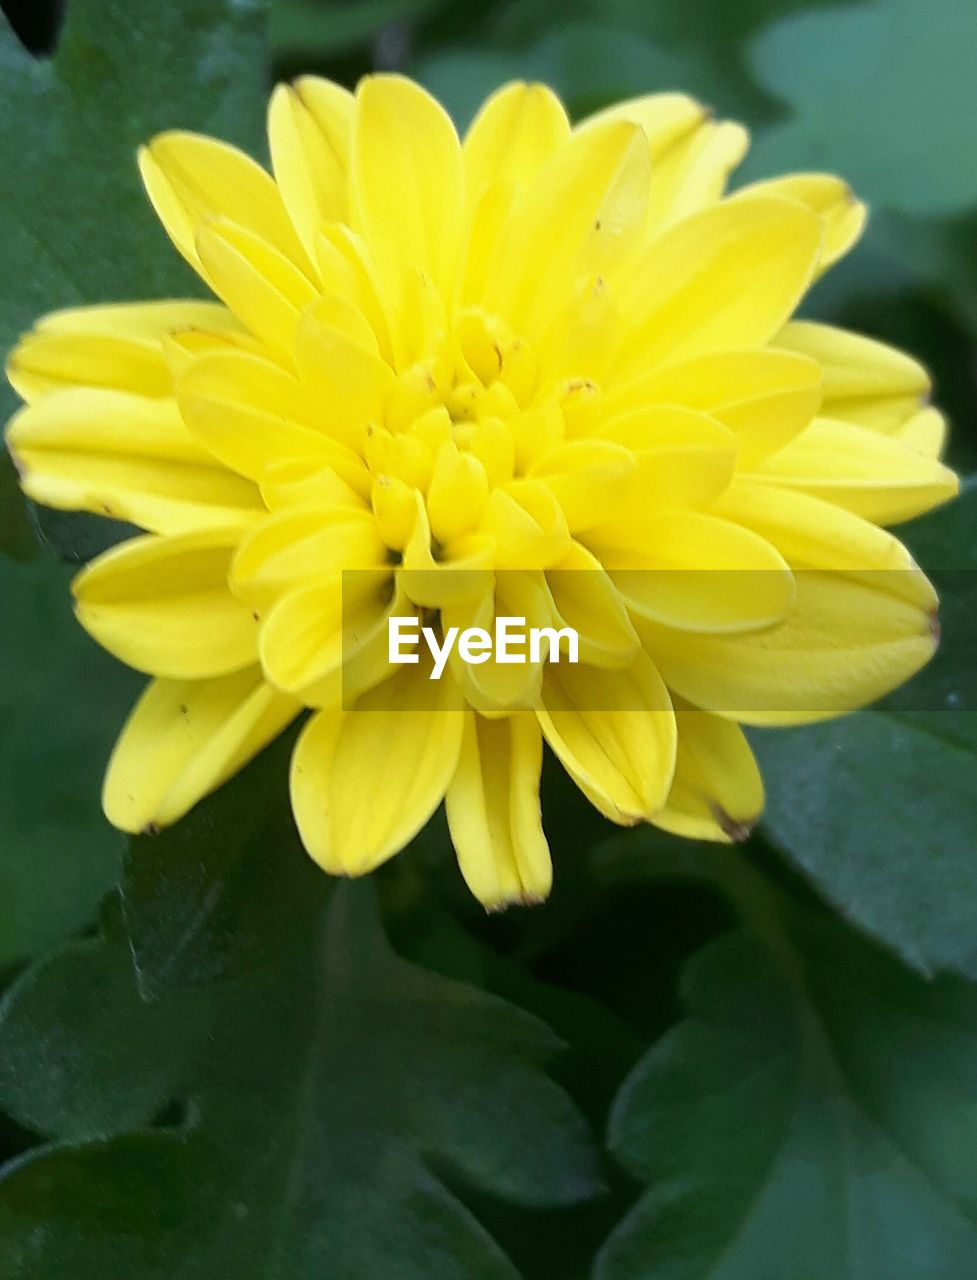 flower, petal, yellow, nature, beauty in nature, fragility, plant, growth, flower head, freshness, blooming, close-up, no people, outdoors, day